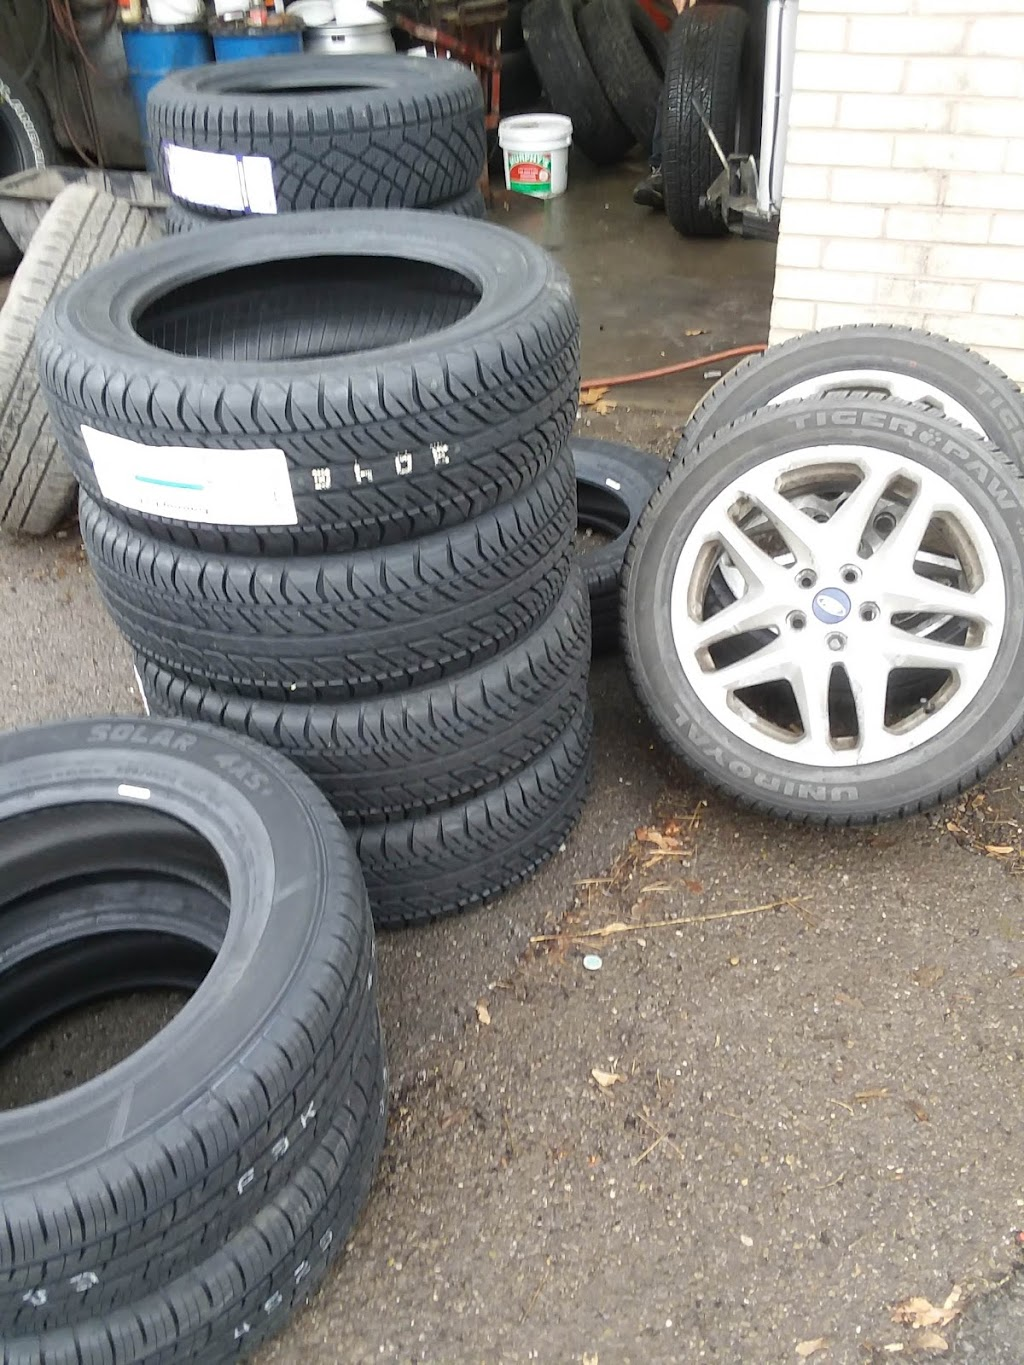 Best Deal Tire Center - car repair    Photo 4 of 7   Address: 89 Clever Rd, McKees Rocks, PA 15136, USA   Phone: (412) 331-1012